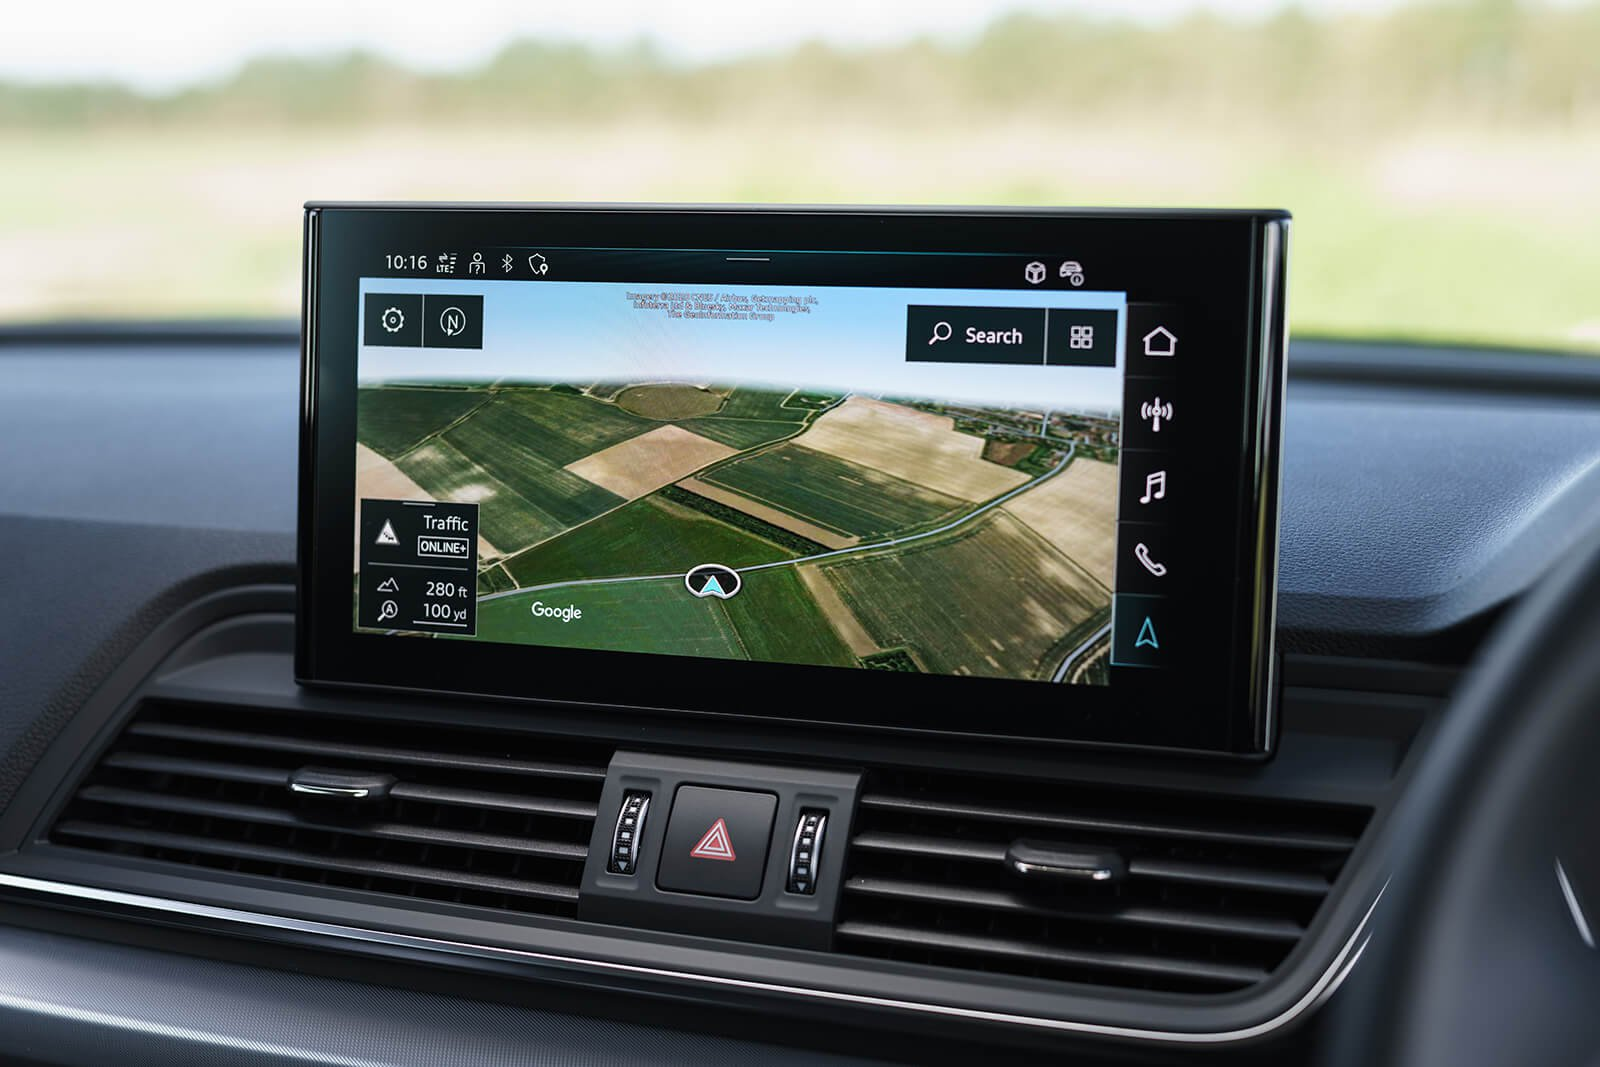 Audi Q5 2021 Infotainment screen